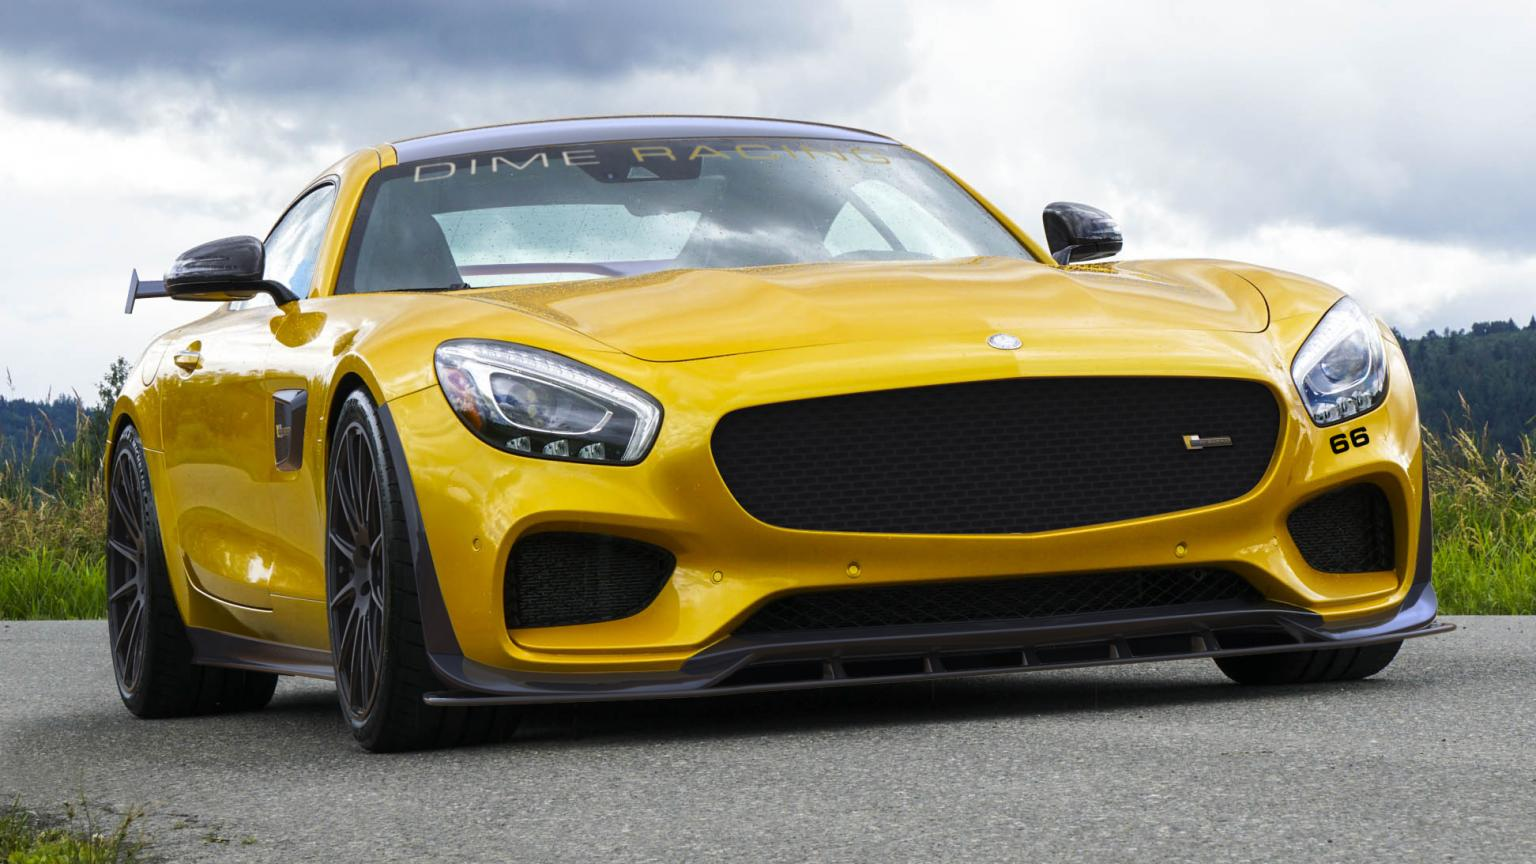 2016 mercedes amg gt by dime racing pictures photos wallpapers top speed. Black Bedroom Furniture Sets. Home Design Ideas